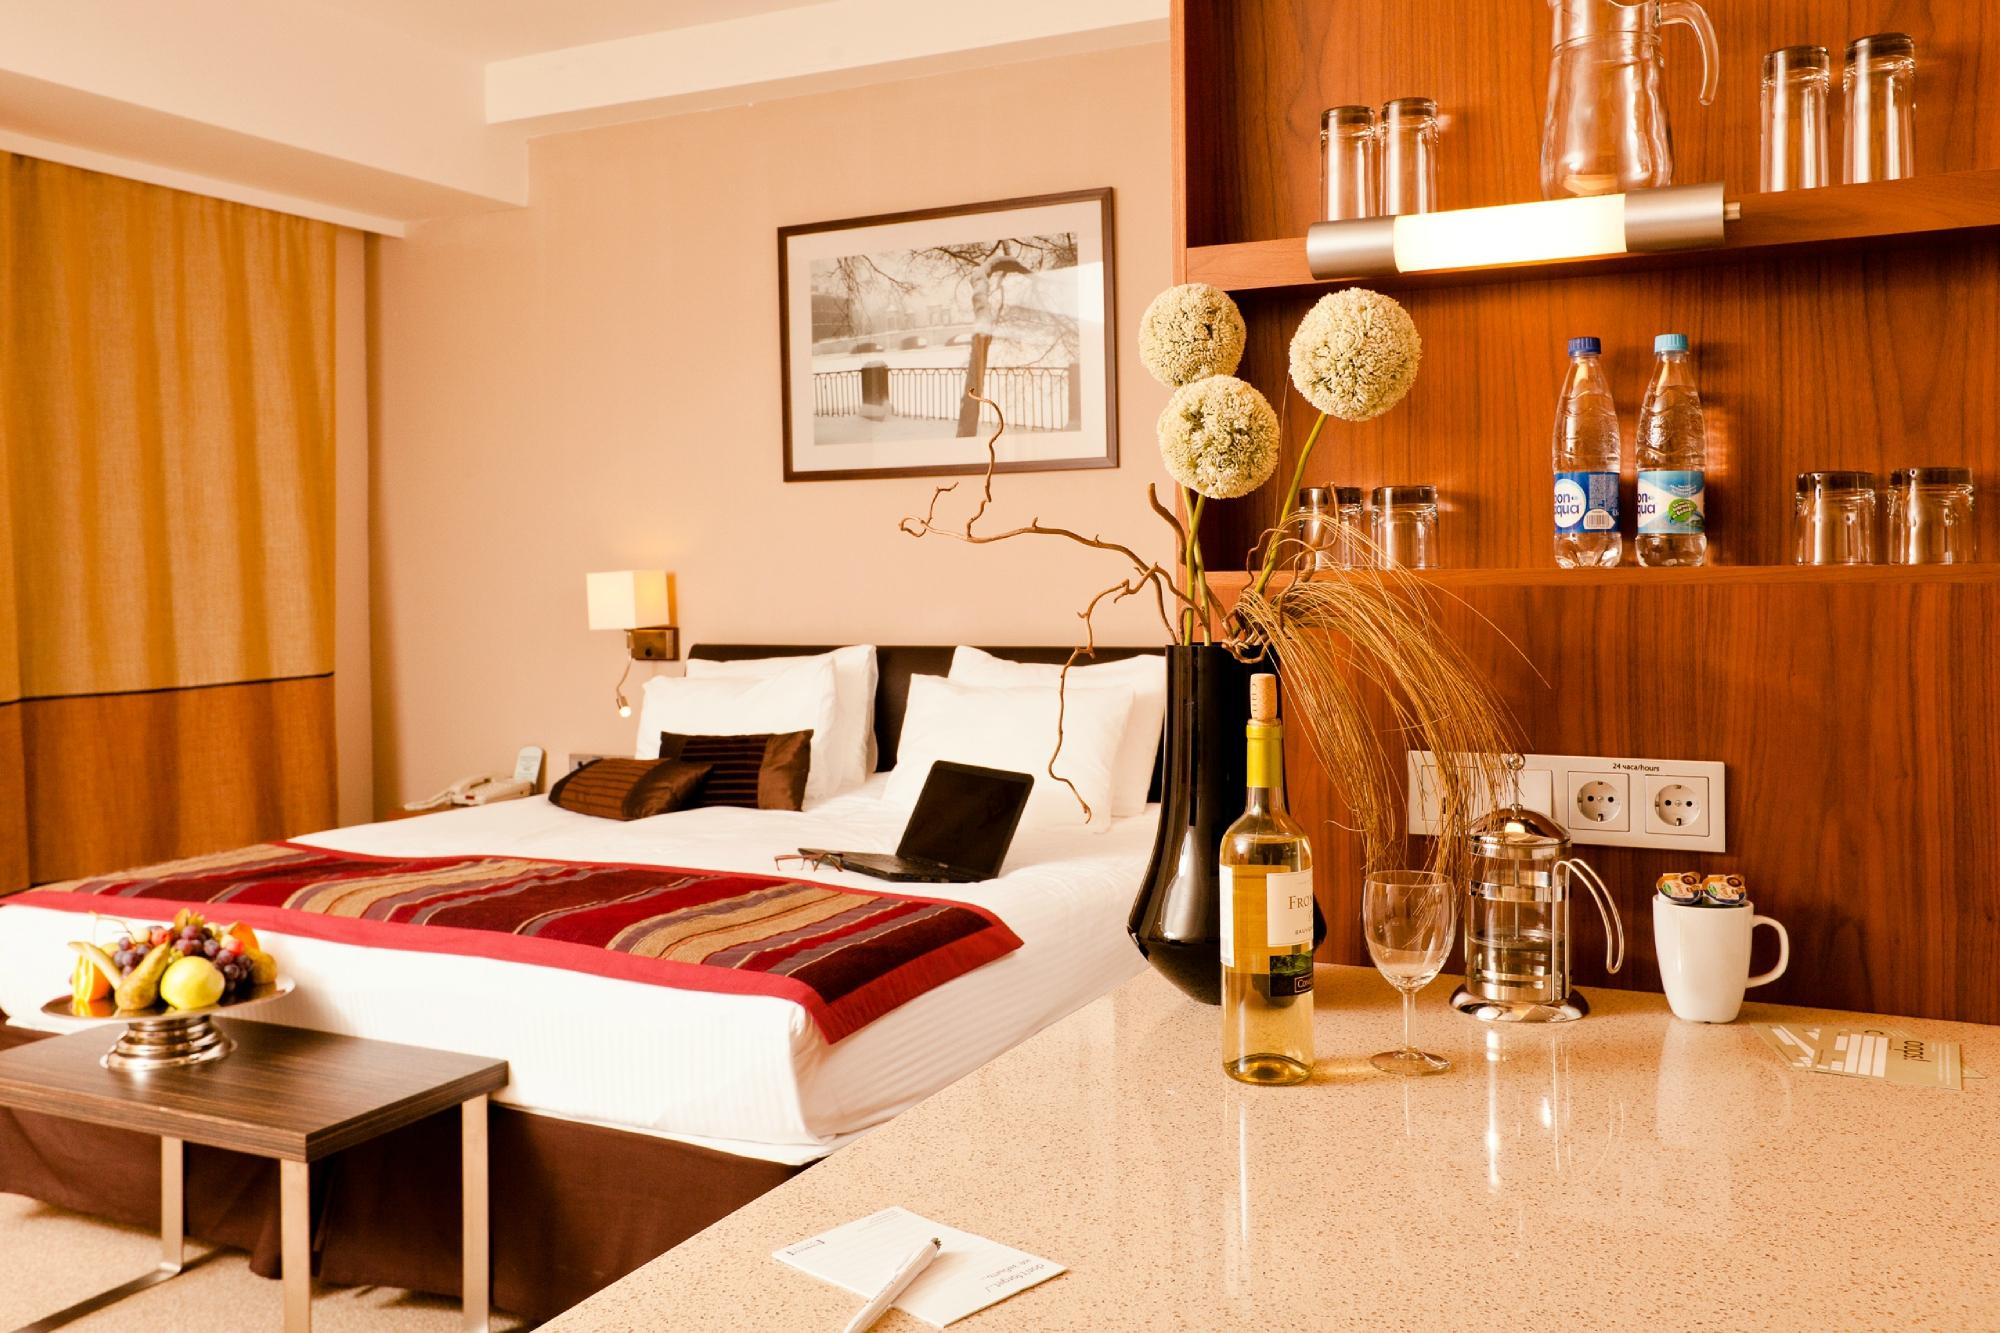 Staybridge Suites St. Petersburg